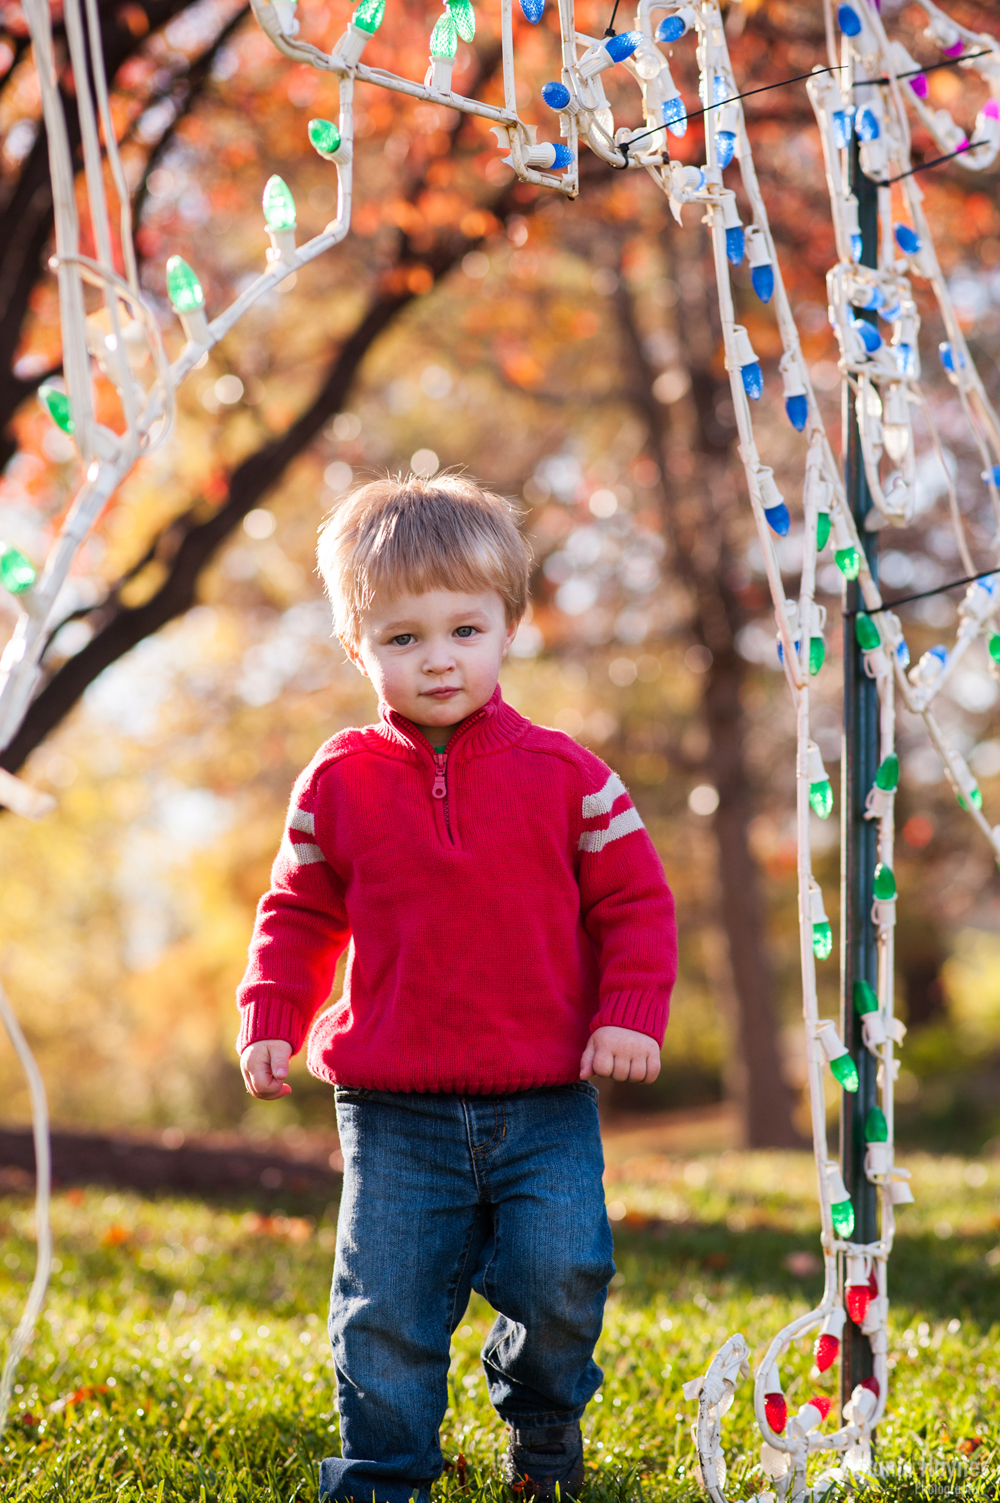 mhaynesphoto_childrensphotography_c1